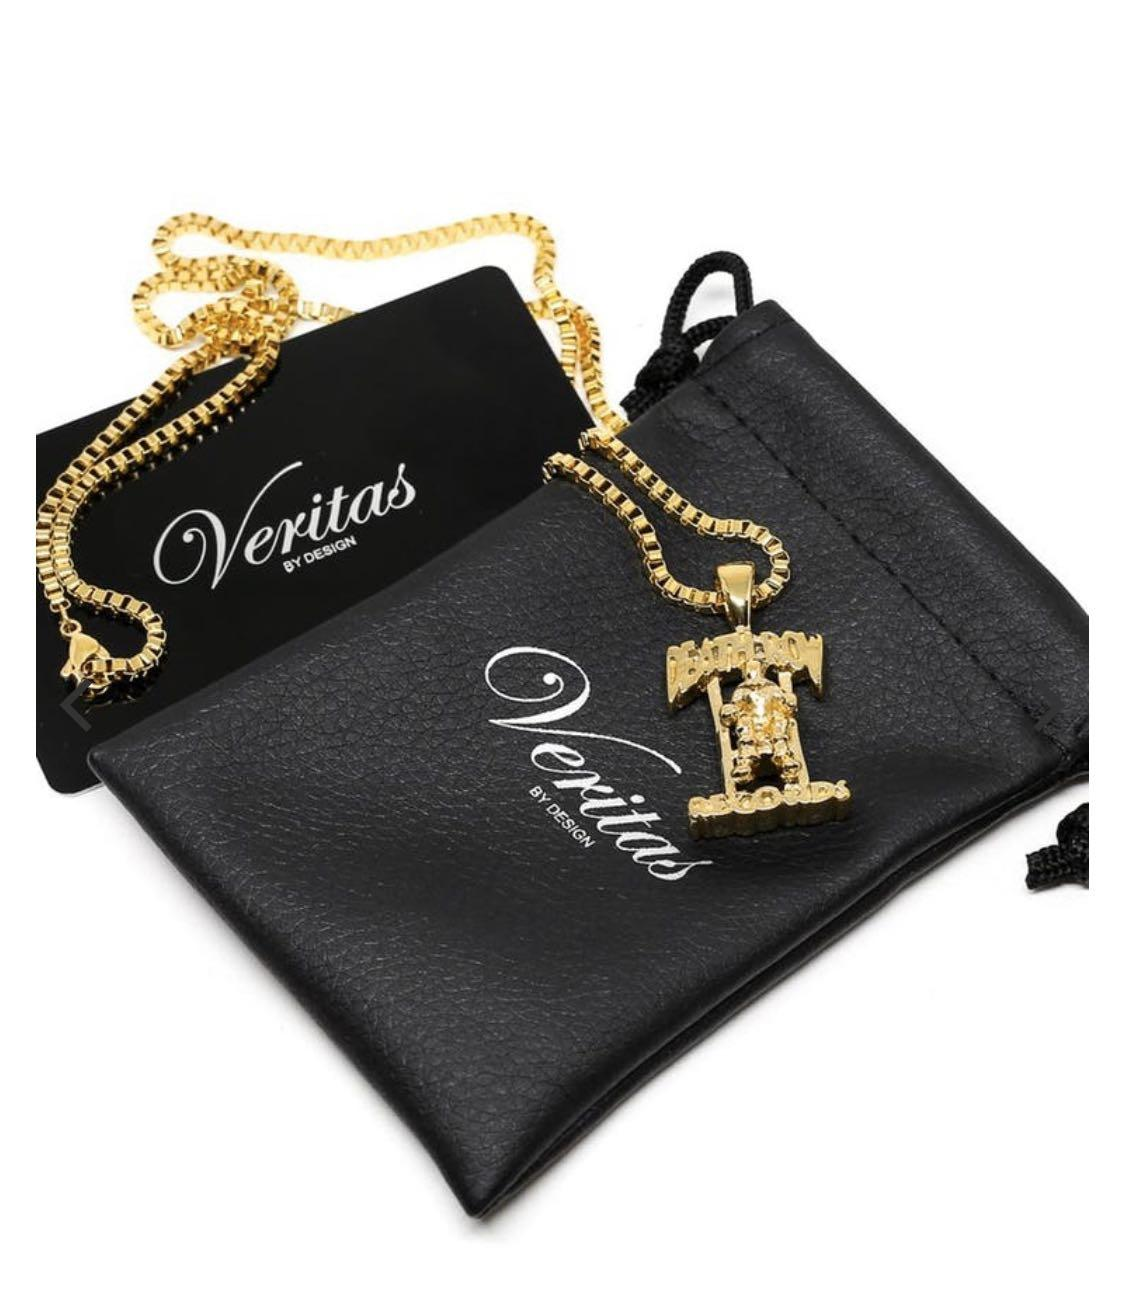 Desperately searching for a VERITAS Death Row Records Chain. PM if selling???